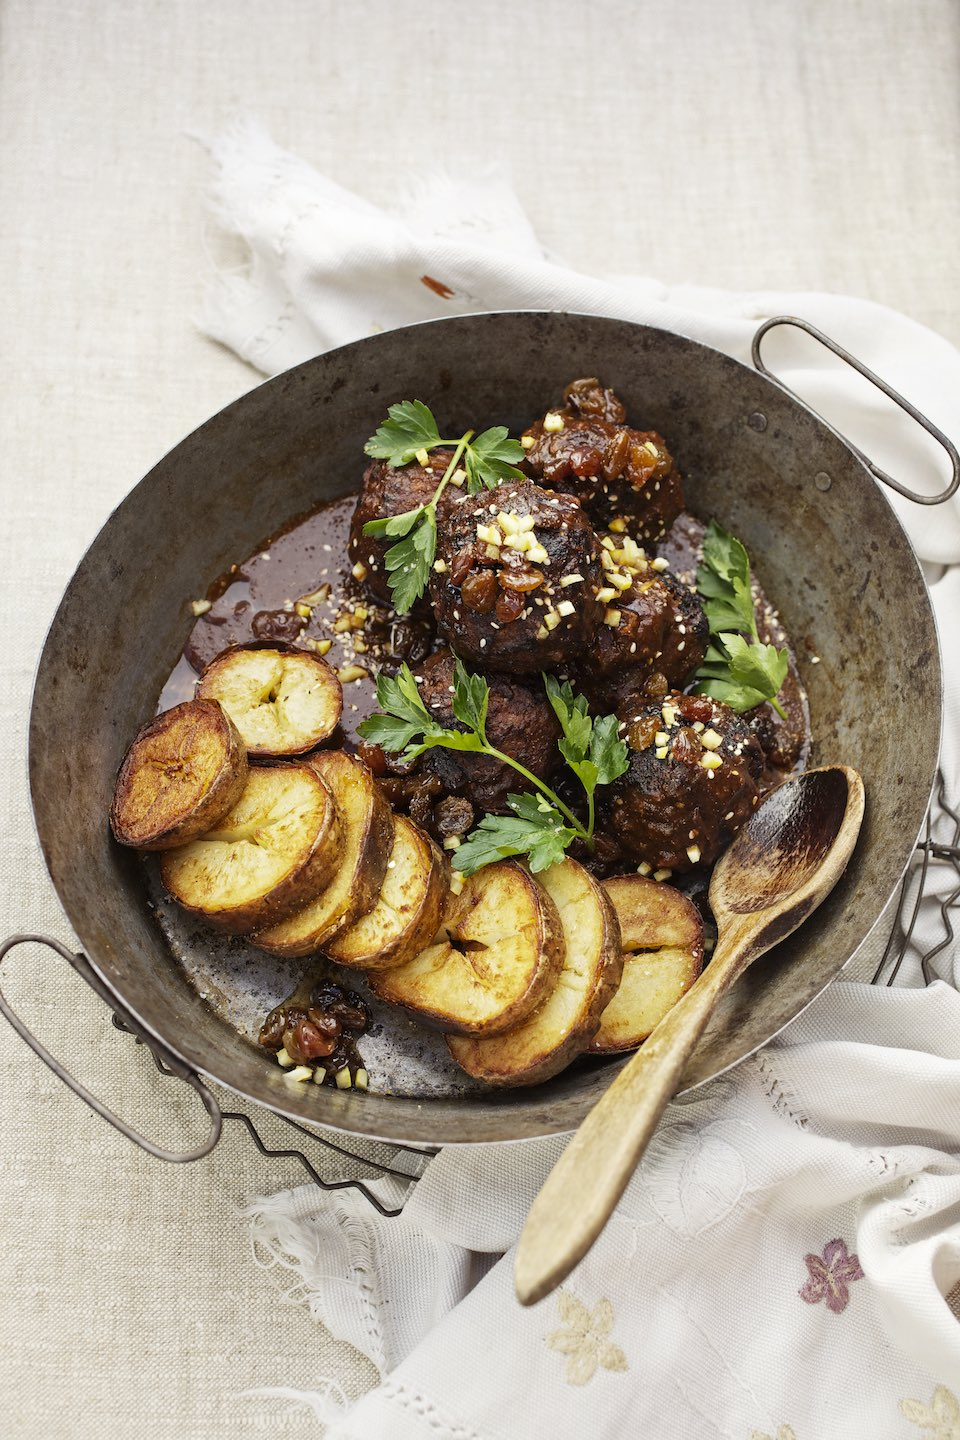 Jody Horton Photography - Meat balls and potatoes with herbs.